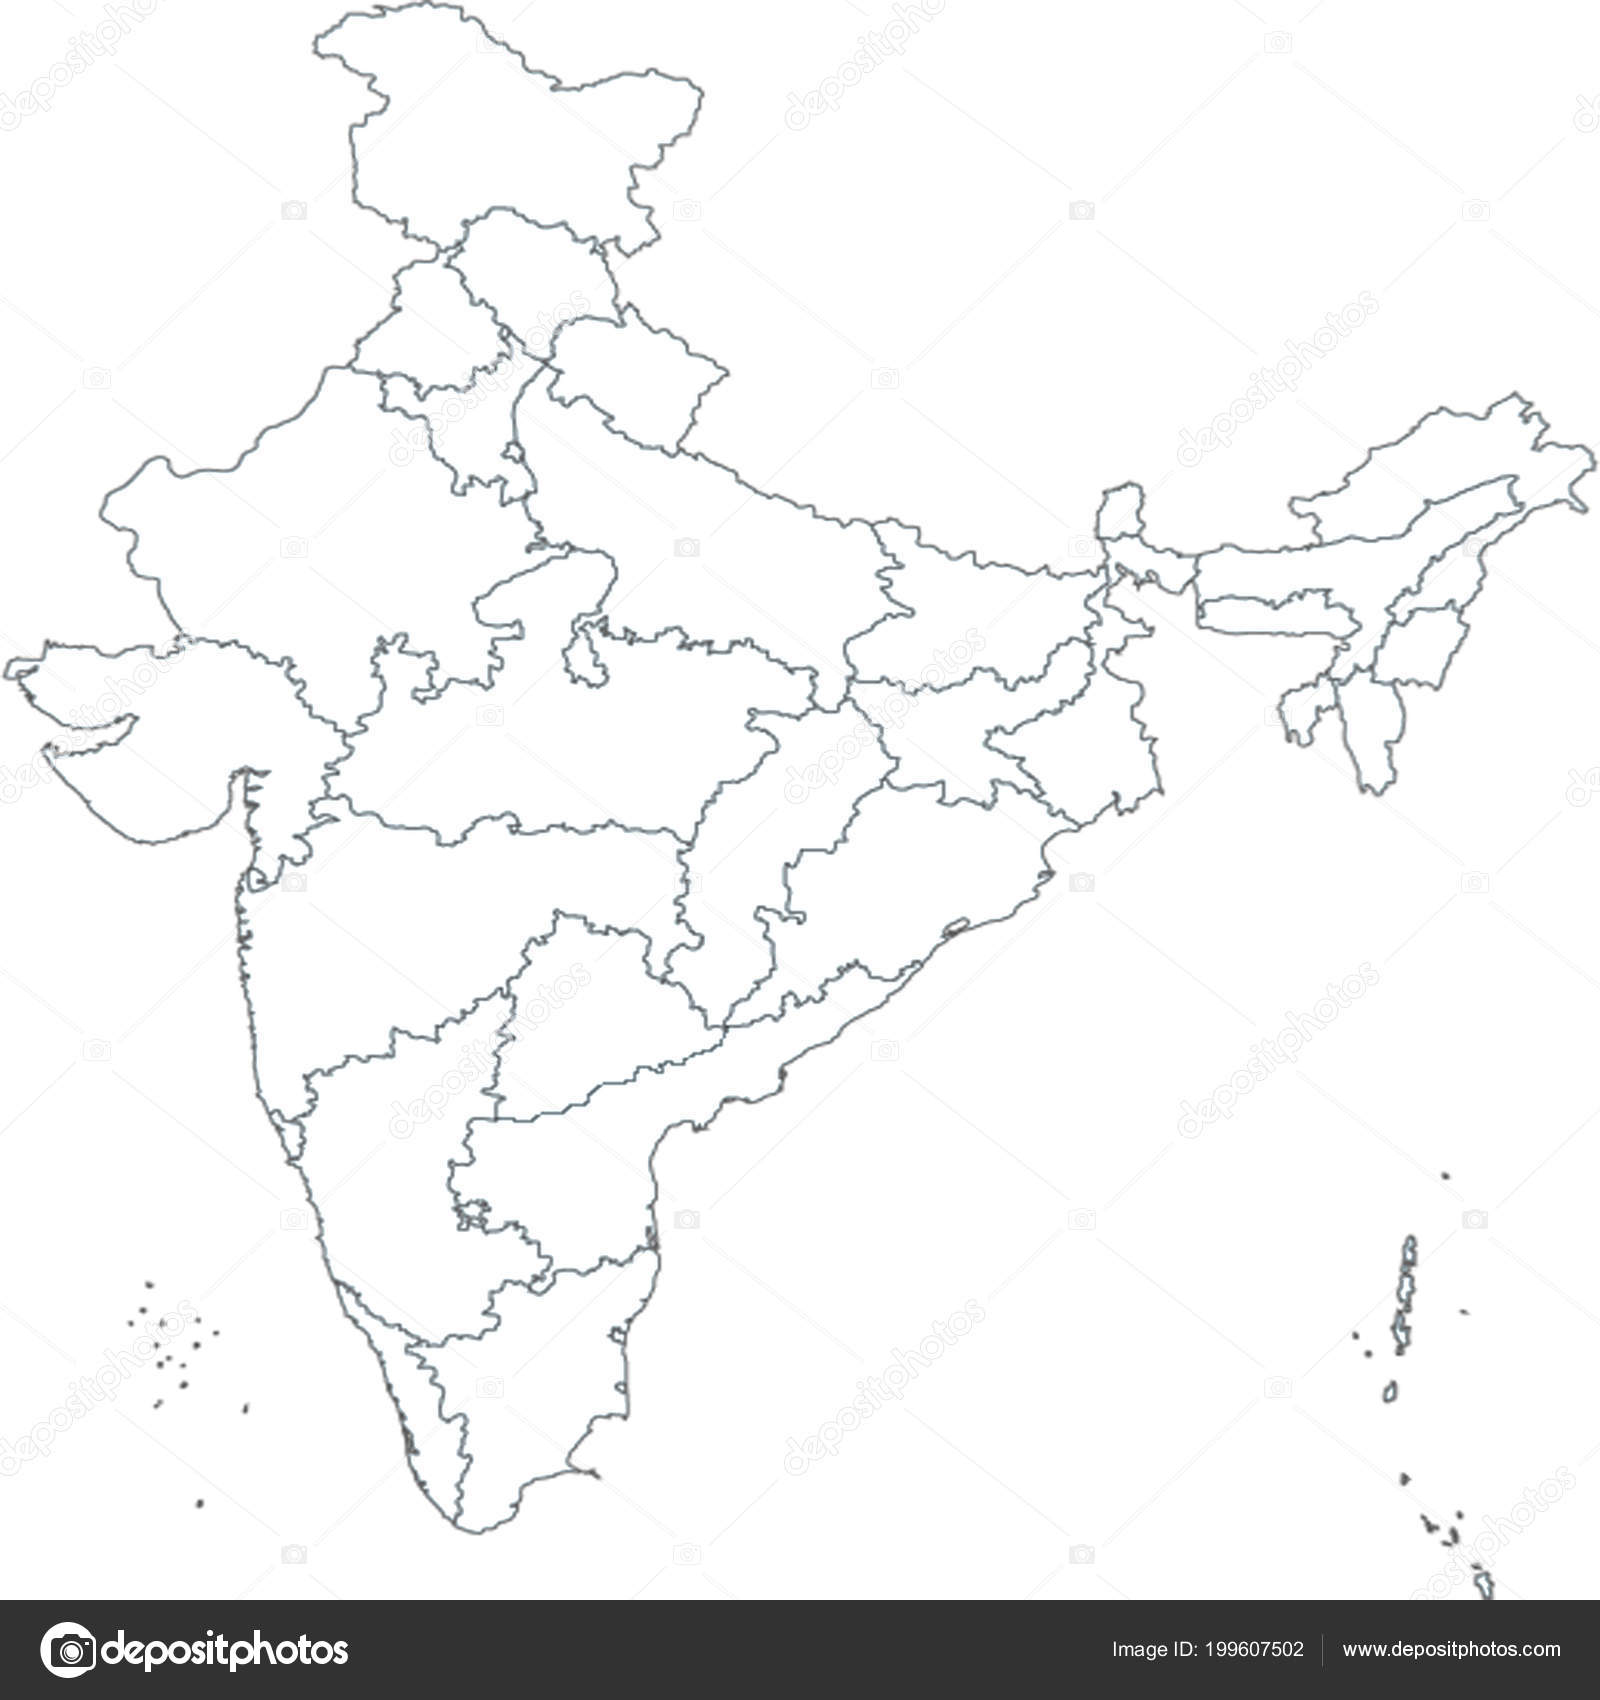 Pictures : india outline map with states | India Outline ... on india river map, india south asia map, texas county map black and white, india political map, river clip art black and white, india map with latitude and longitude, india map with city,